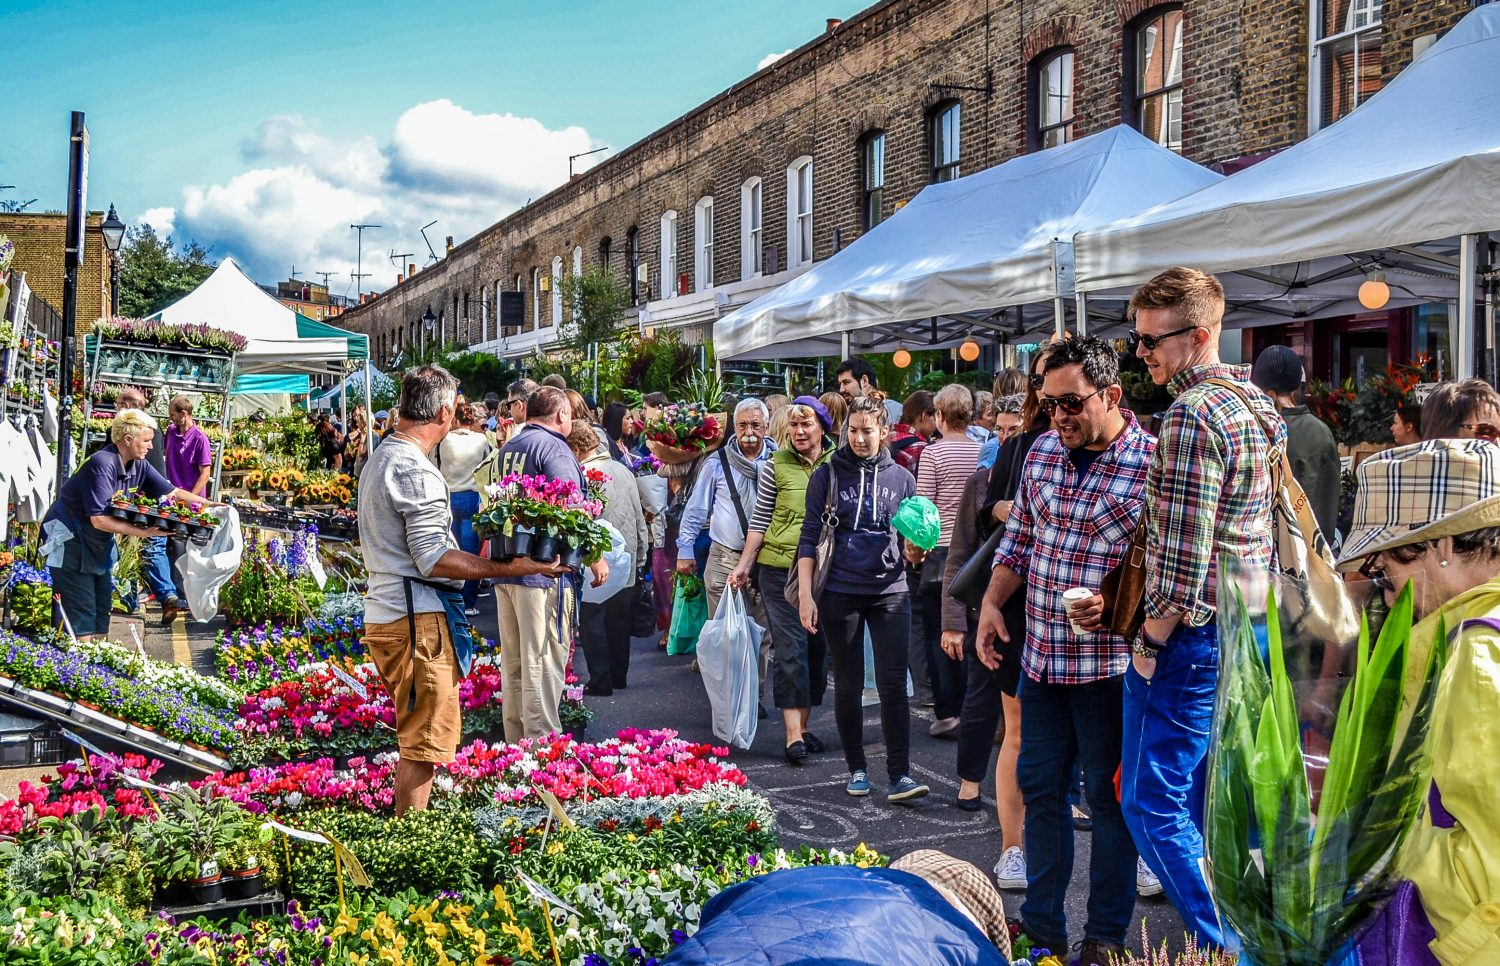 London Columbia Road Market